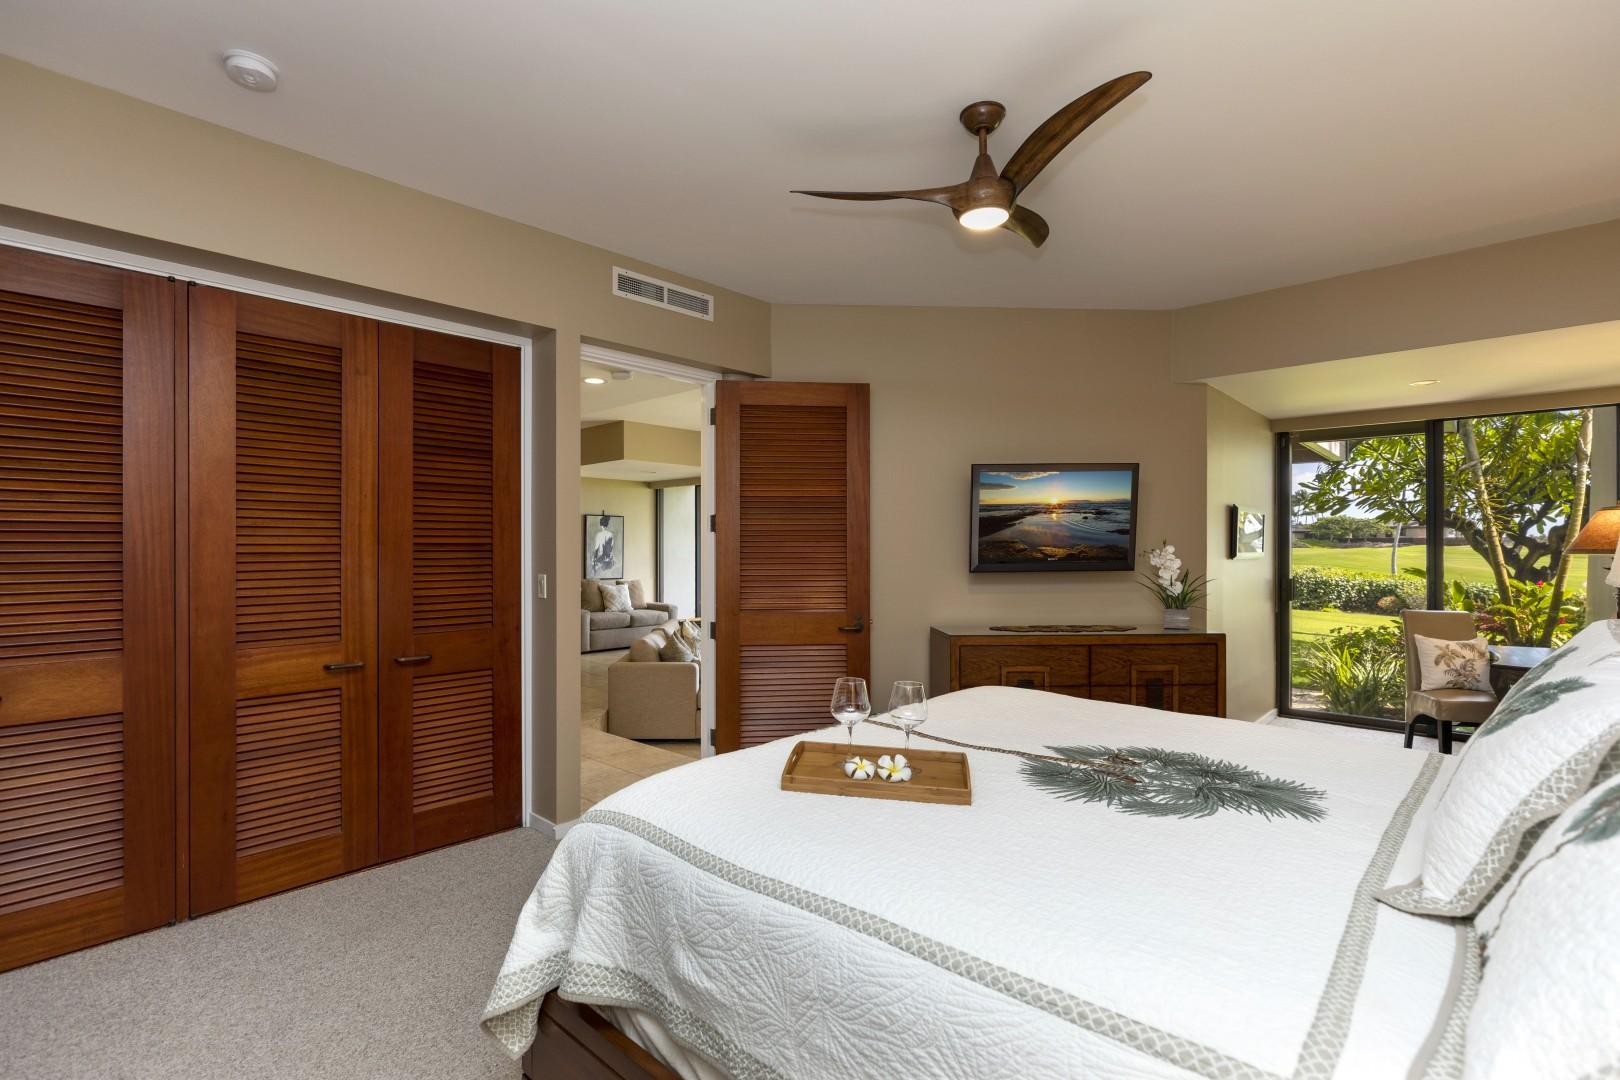 The master bedroom is very spacious and luxurious.